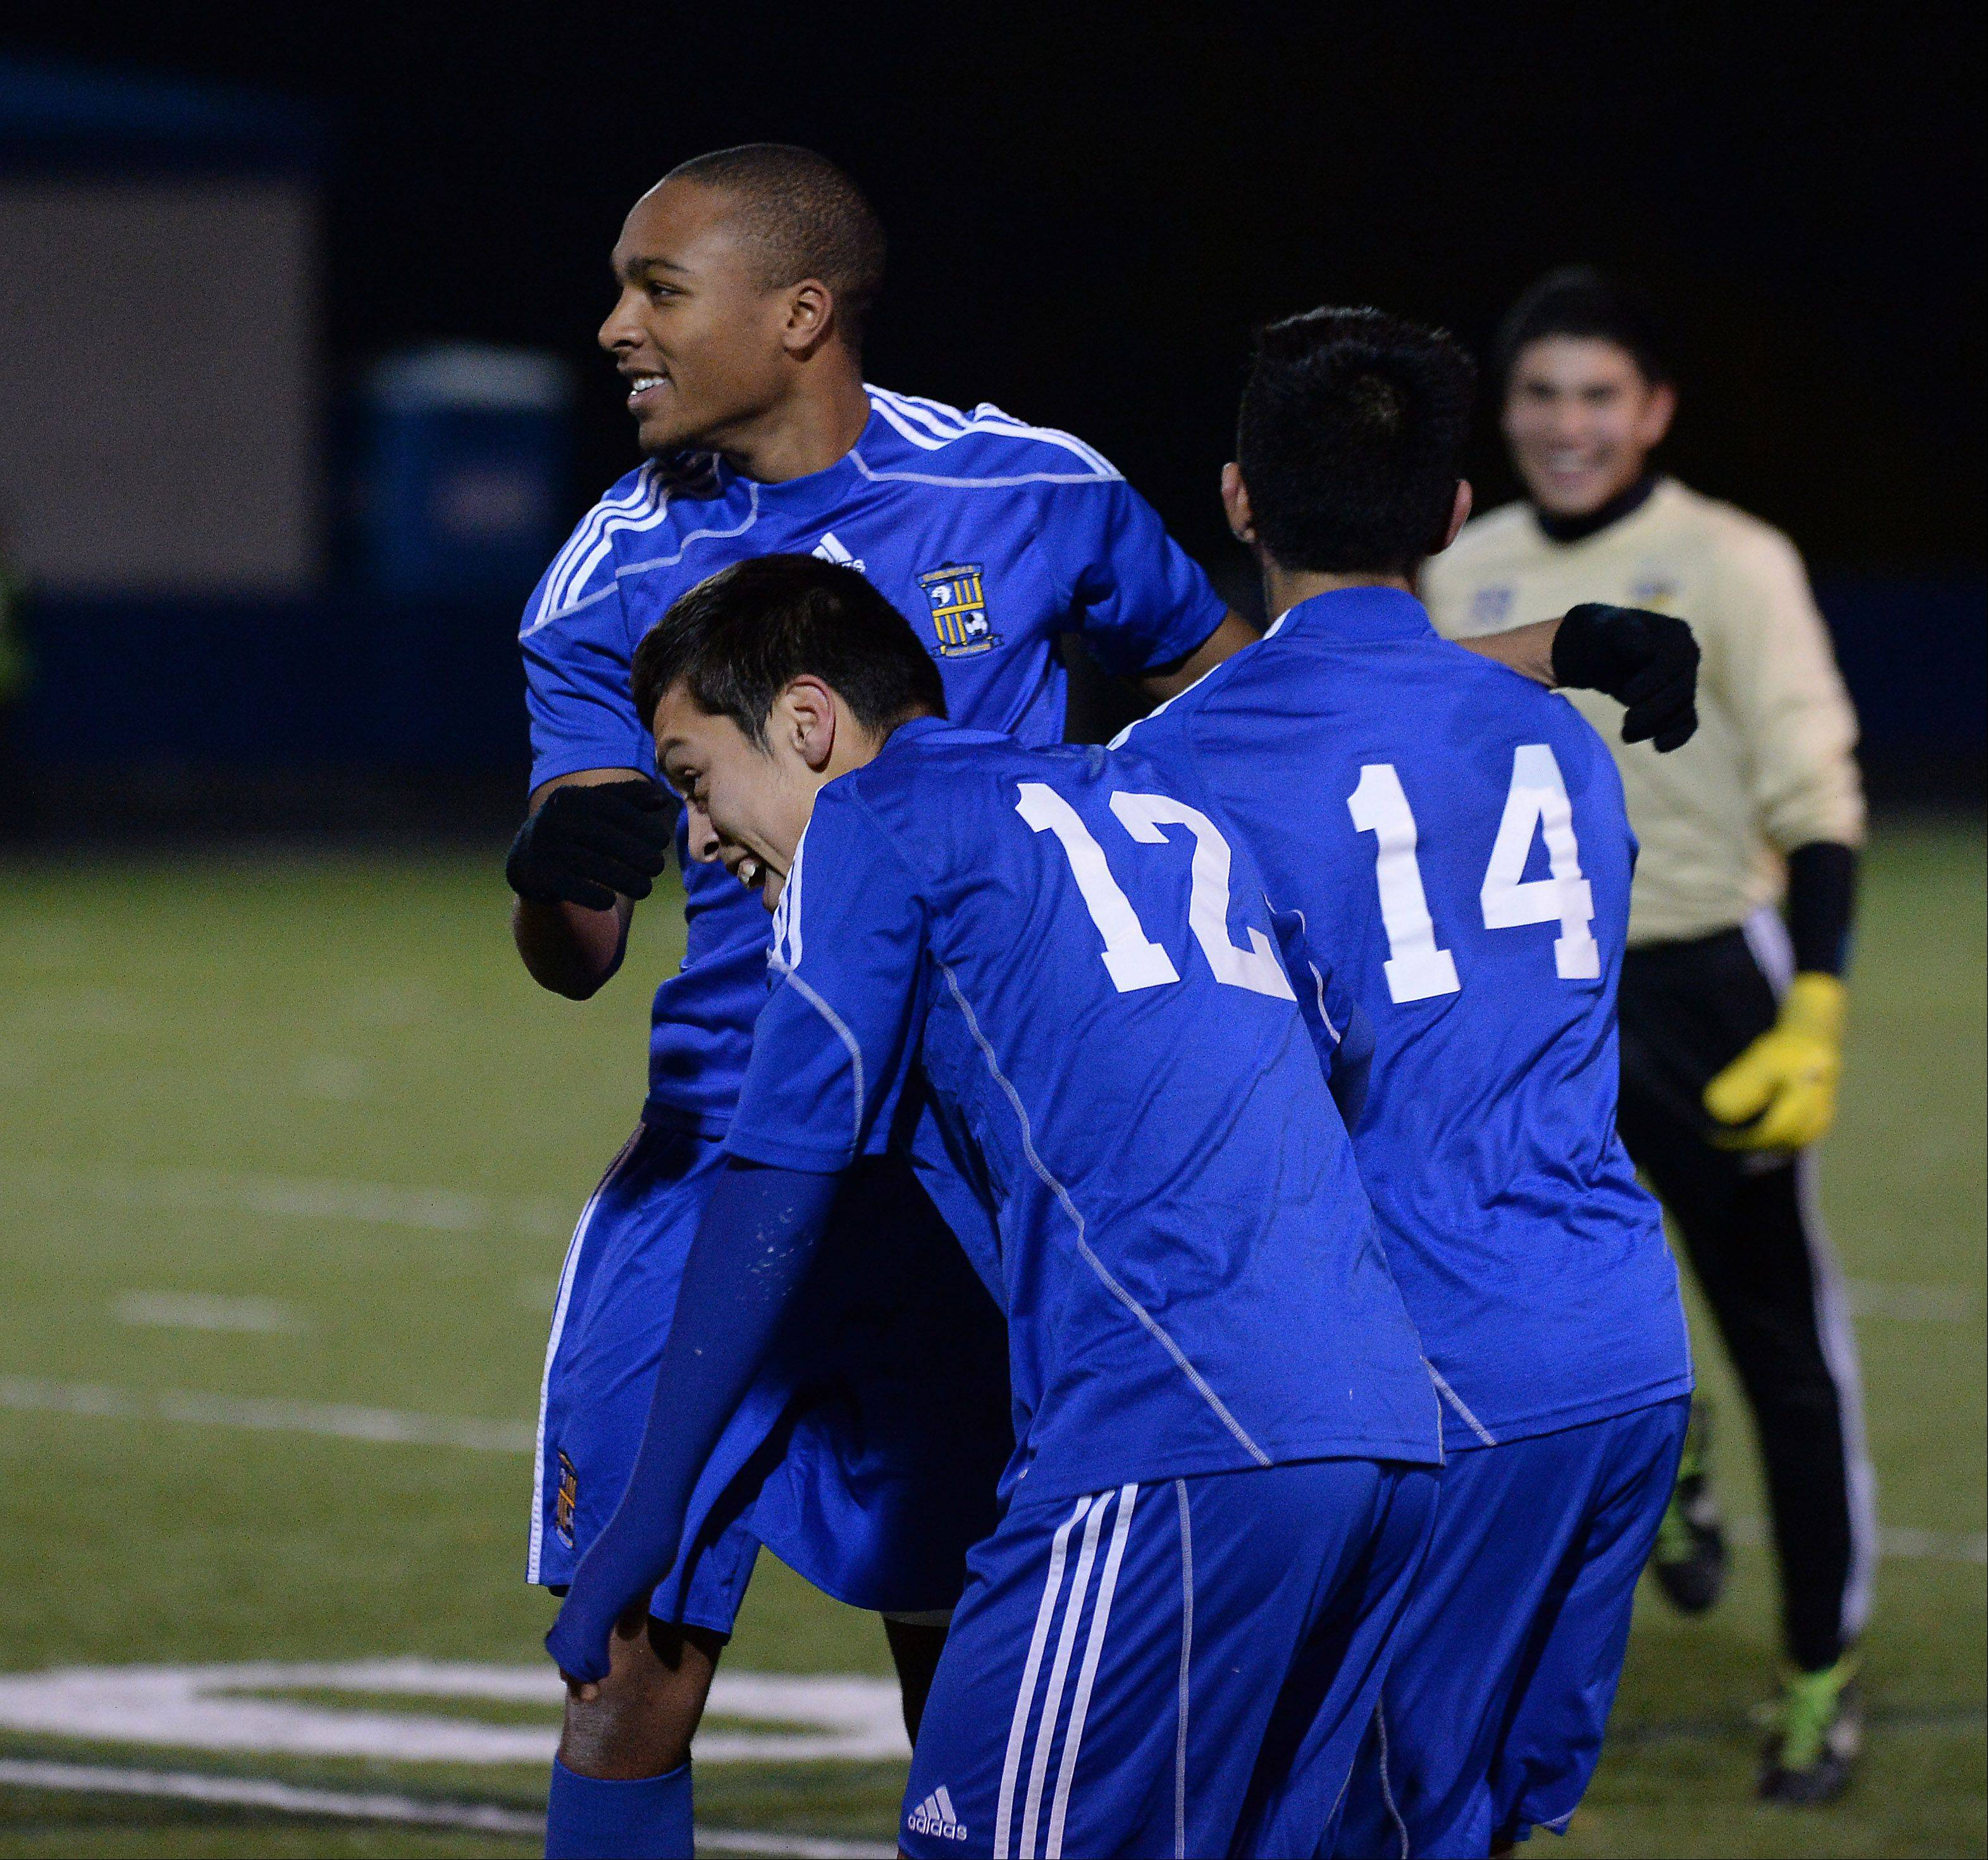 Wheeling's Laude Nathan celebrates their victory over Lake Park with his teammates Alfredo Rocha and Marino Lopez.